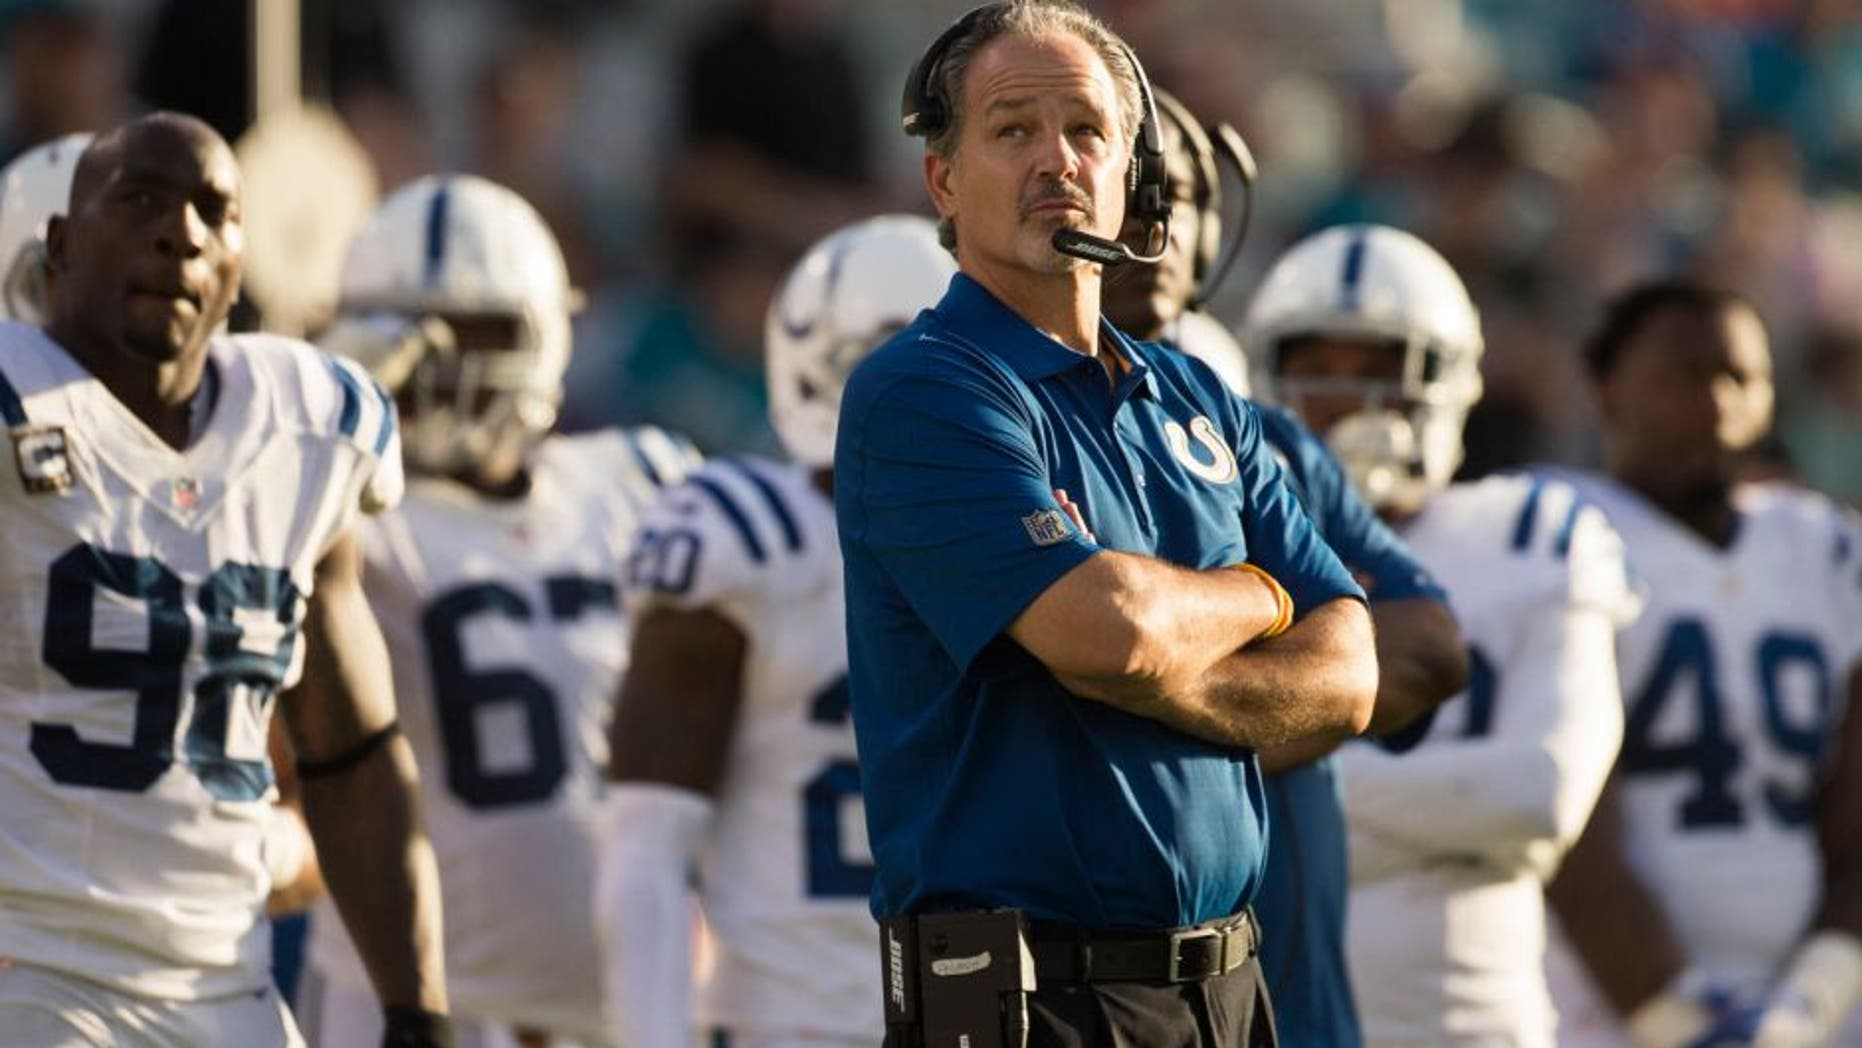 Dec 13, 2015; Jacksonville, FL, USA; Indianapolis Colts head coach Chuck Pagano looks on during the fourth quarter in a game against the Jacksonville Jaguars at EverBank Field. The Jacksonville Jaguars won 51-16. Mandatory Credit: Logan Bowles-USA TODAY Sports